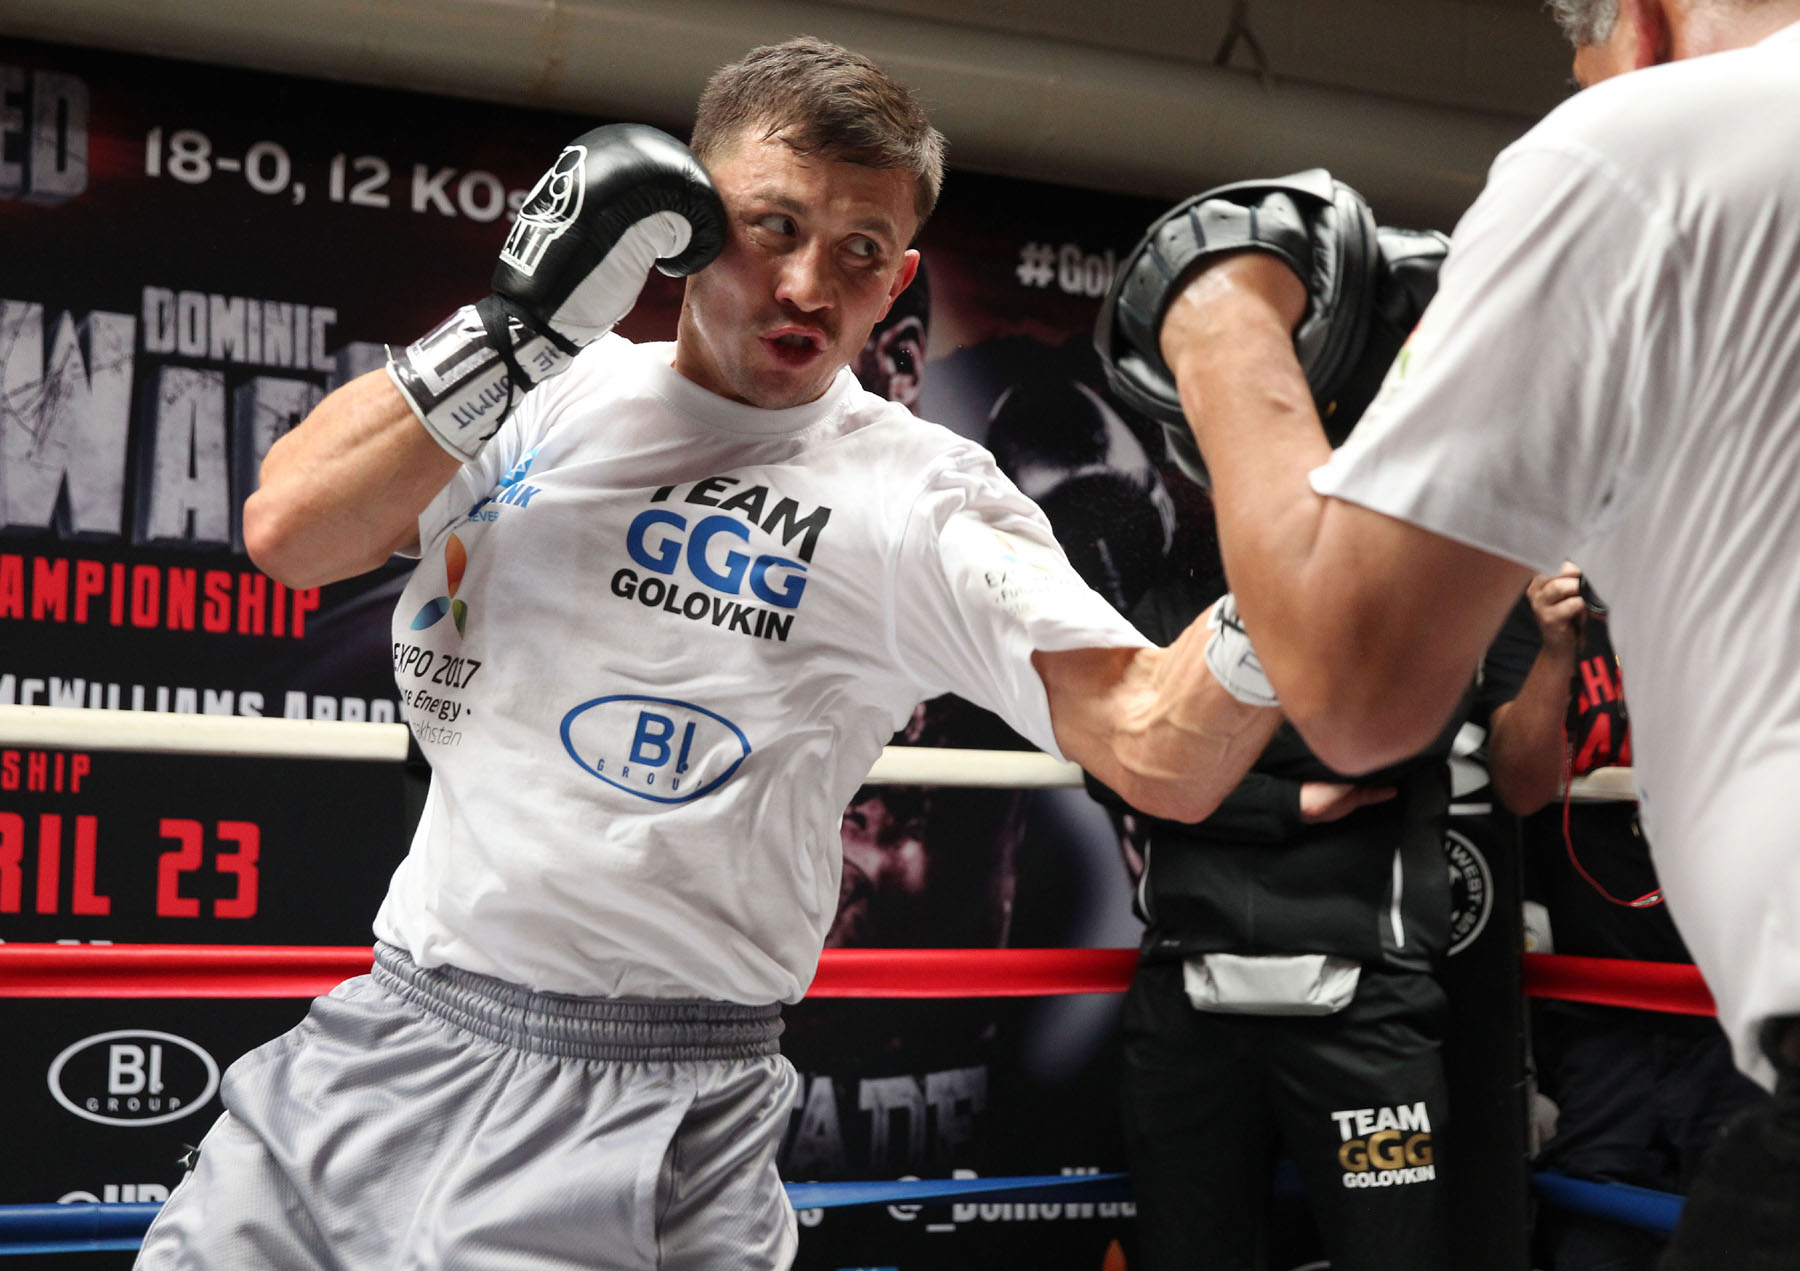 """---   Photo Credit : Chris Farina -  K2 Promotions  April 20, 2016 , Santa Monica,Ca. ---  Boxing Superstar and Unified World Middleweight Champion Gennady """"GGG"""" Golovkin, 34-0 (31KO's) works out during media day Wednesday at the Wild Card West in Santa Monica, California.  Boxing Superstar and Undefeated, Unified World Middleweight Champion Gennady, """"GGG"""" Golovkin, 34-0 (31KO's) will defend his titles (WBA, IBF, IBO and WBC """"Interim') against Undefeated Mandatory Challenger Dominic Wade, 18-0 (12KO's) on Saturday, April 23 at the Fabulous Forum in the main event at UNDEFEATED.  Co-featured will be Consensus #1 Pound-For-Pound Fighter and WBC Flyweight World Champion Roman """"Chocolatito"""" Gonzalez, 44-0 (38KO's) battling World Ranked Contender McWilliams Arroyo, 16-2 (14KO's) of Puerto Rico.  Both bouts will be televised Live on HBO World Championship Boxing® beginning at 10:00 p.m. ET/7:00 p.m. PT. Tickets for UNDEFEATED, priced at $400, $300, $200, $100, $60 and $30, are now on sale through Ticketmaster (Ticketmaster.com, 1-800-745-3000) and the Forum Box Office.  Golovkin vs. Wade is promoted by K2 Promotions, GGG Promotions and in association with TGB Promotions. Gonzalez vs. McWilliams is presented by K2 Promotions in association with Teiken Promotions and PR Best Boxing Promotions."""